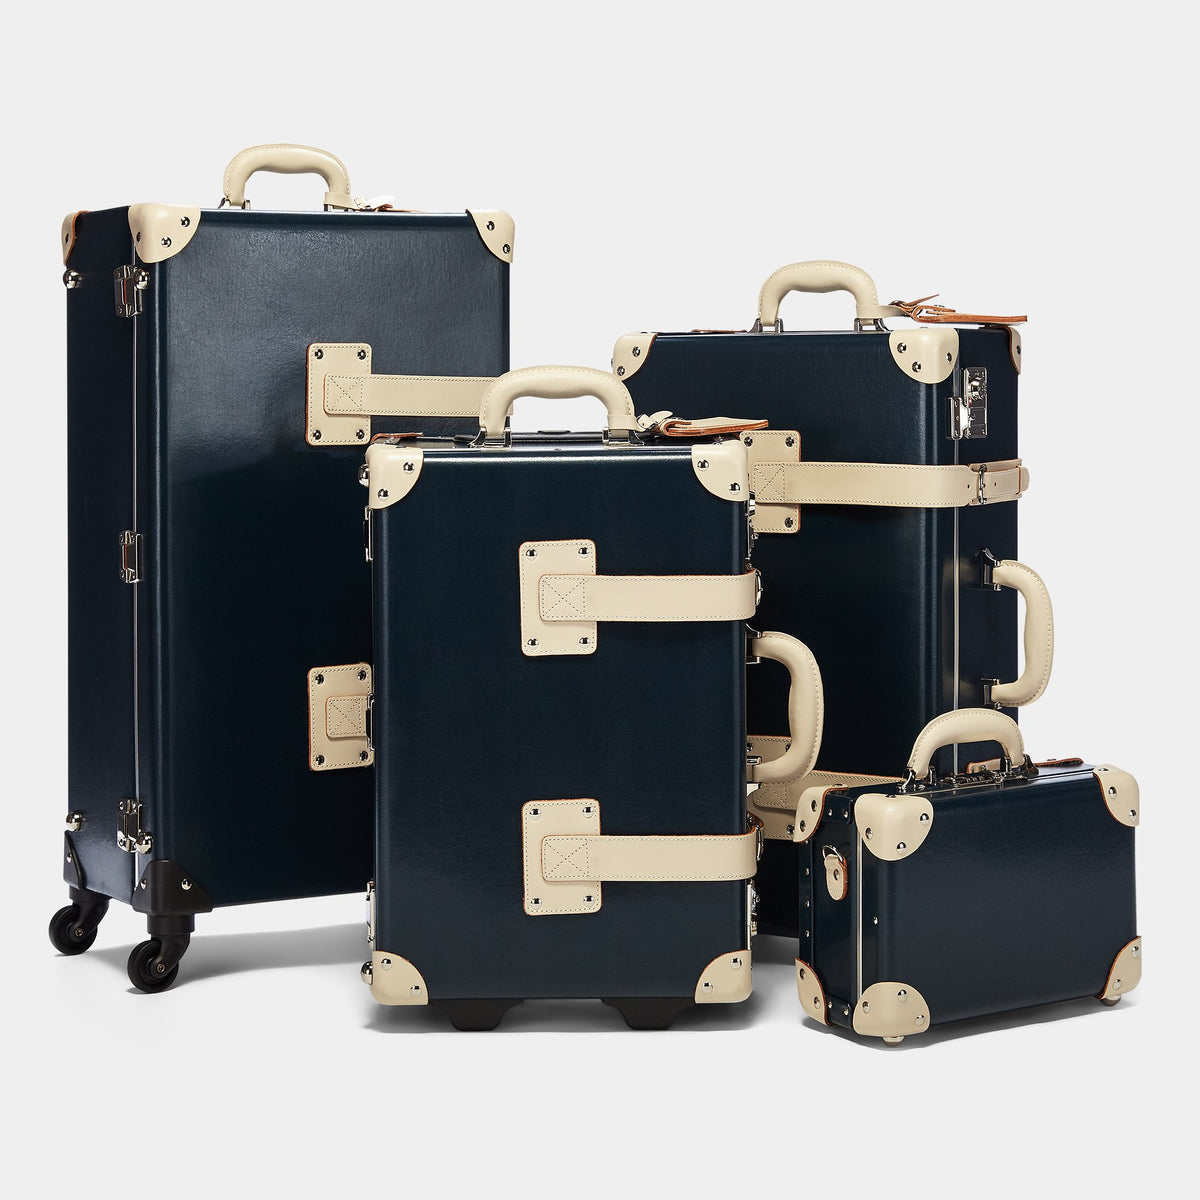 The Anthropologist Carryon in Navy - Vintage Style Leather Case - Alongside matching cases from the Anthropologist Navy collection